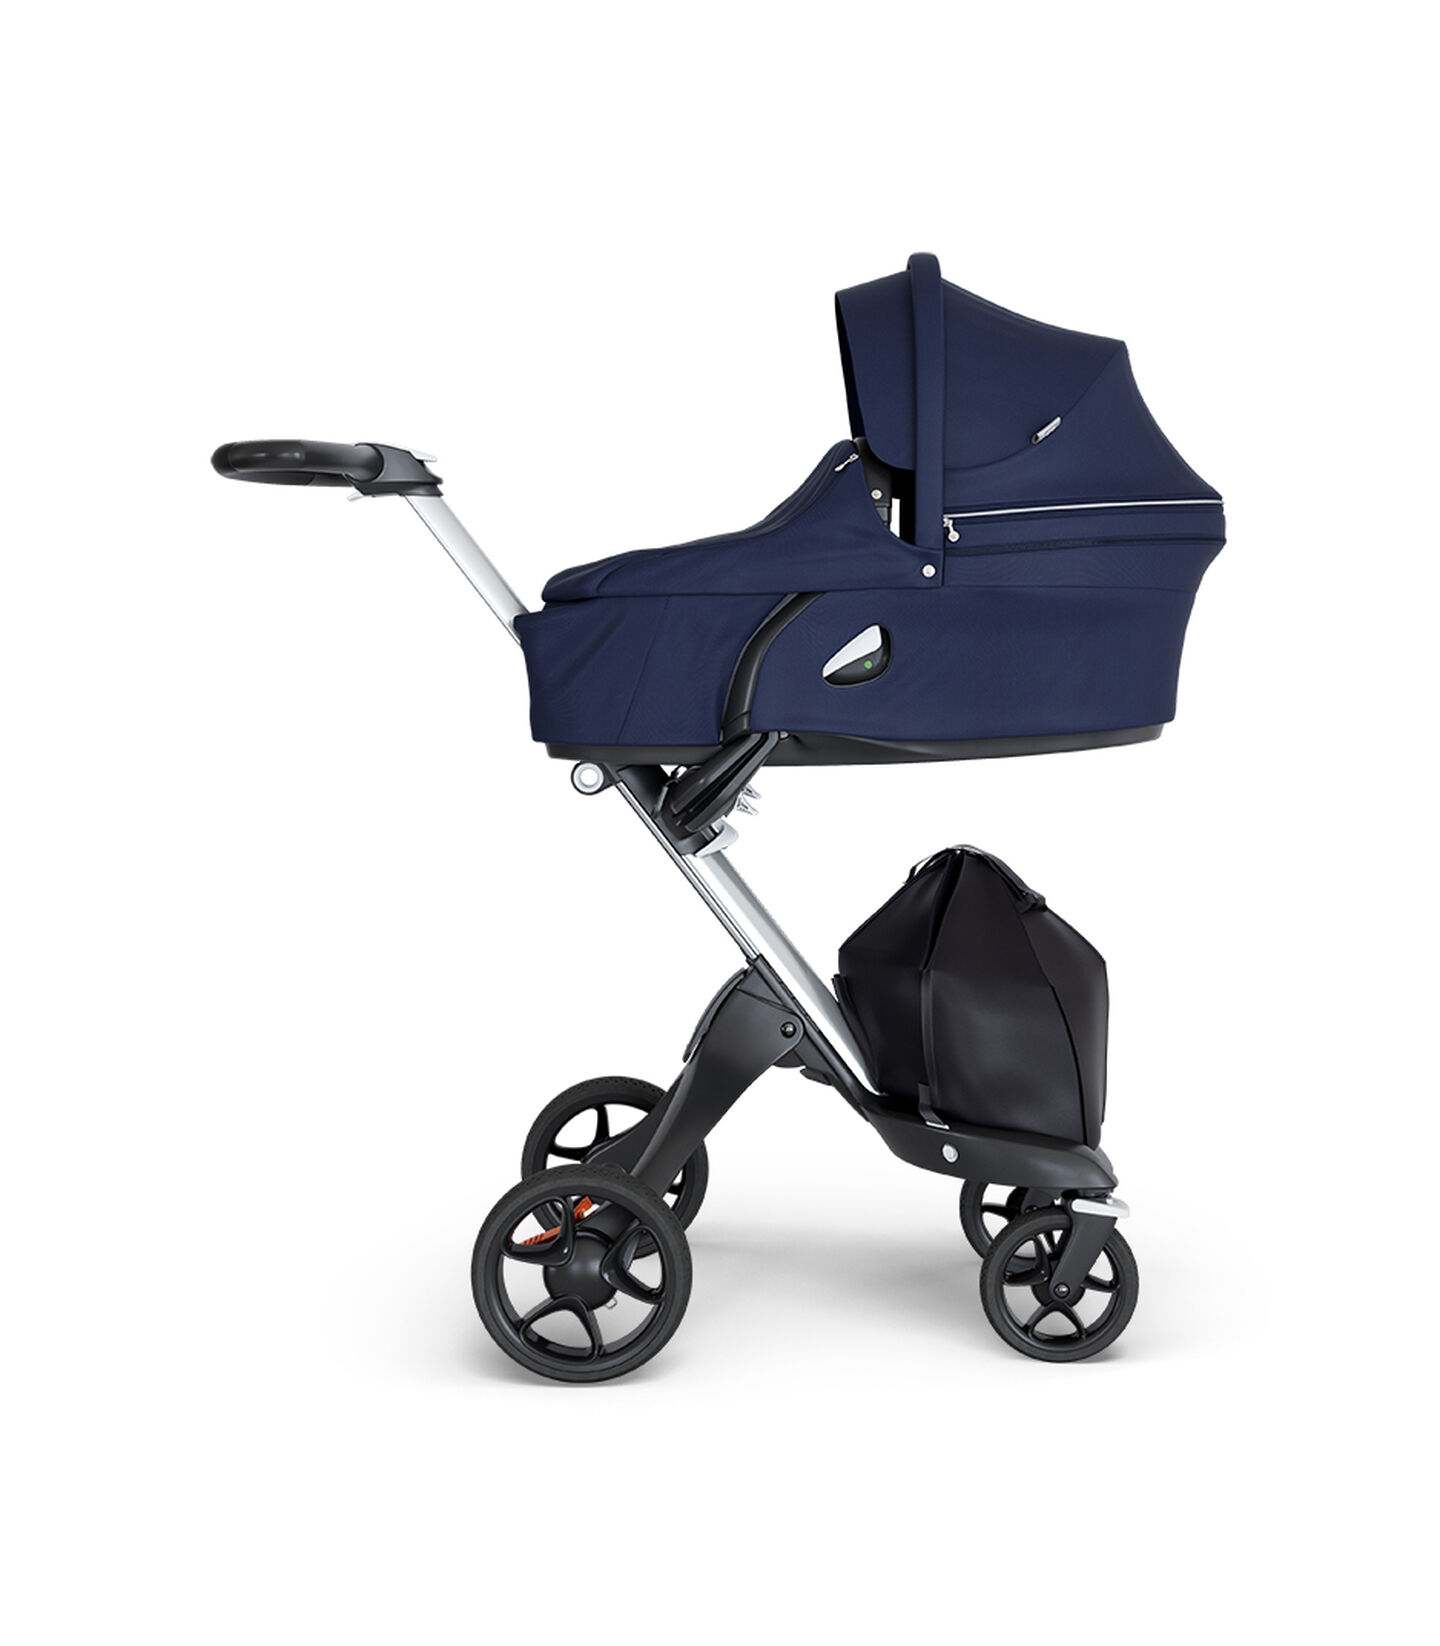 Stokke® Xplory® wtih Silver Chassis and Leatherette Black handle. Stokke® Stroller Carry Cot Deep Blue.